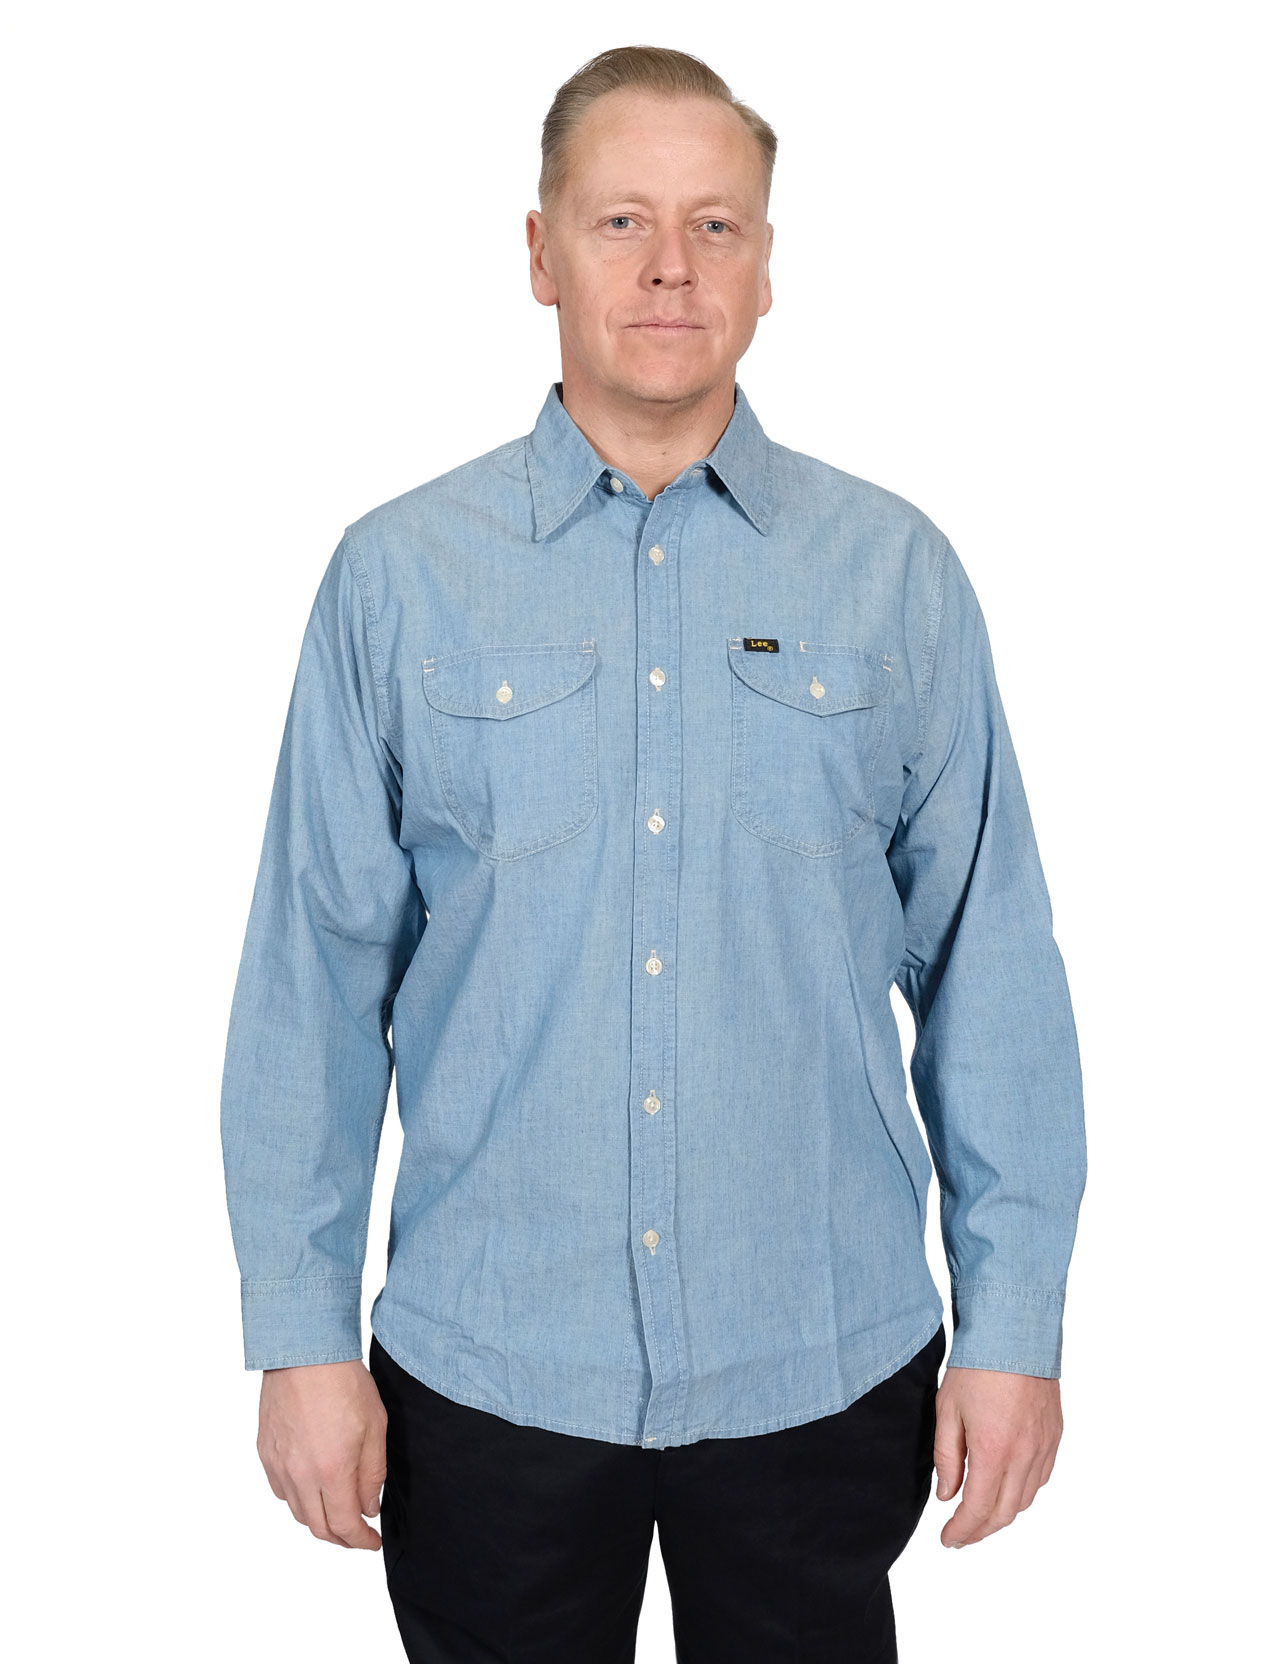 9266e2e0ba Lee - 101 Worker Shirt Selvage Chambray - Washed